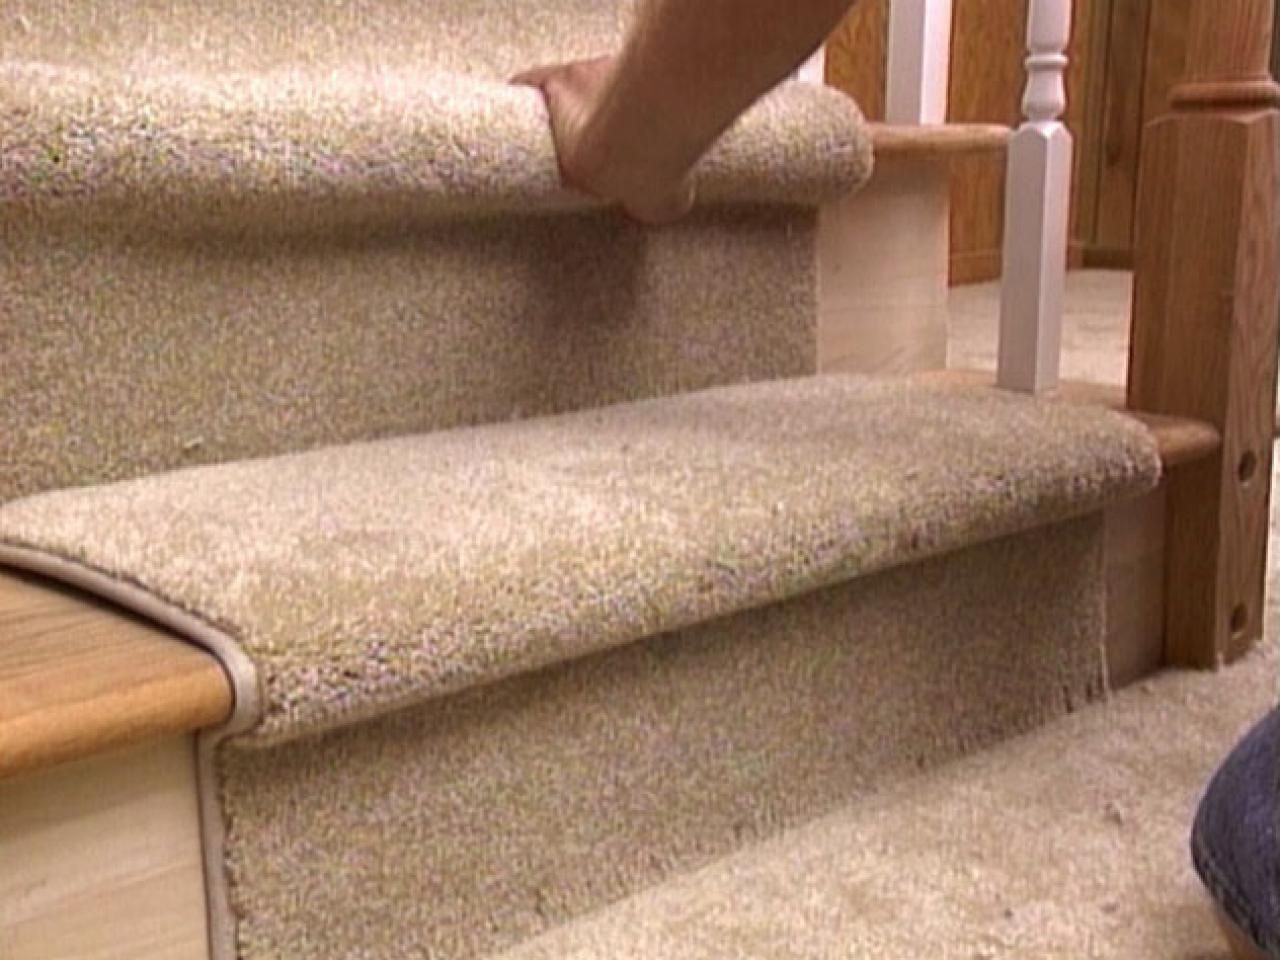 How To Install A Carpet Runner On Stairs U003eu003e Http://www.